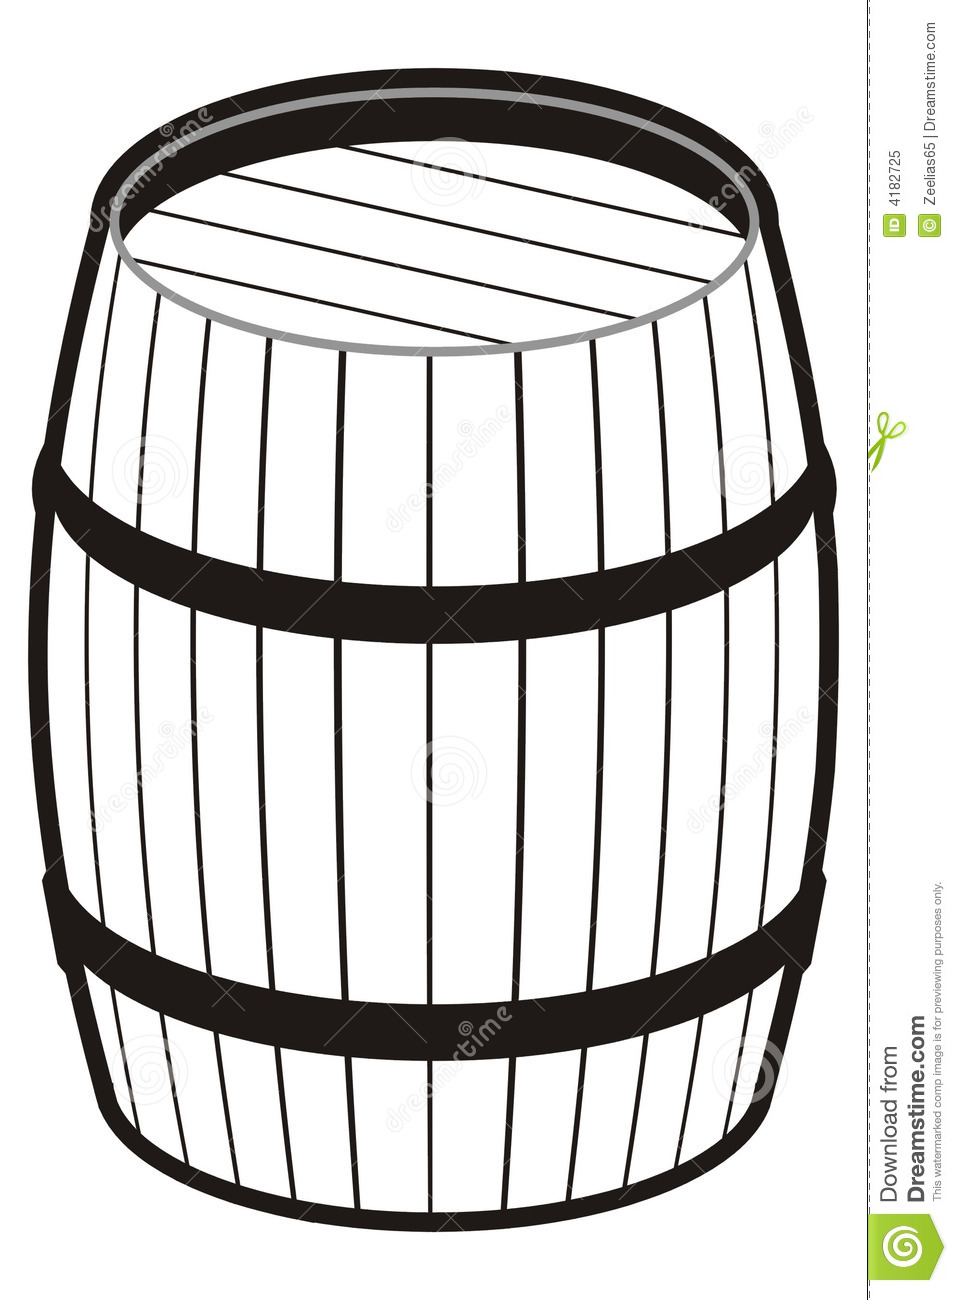 Barrel Royalty Free Stock Photo.